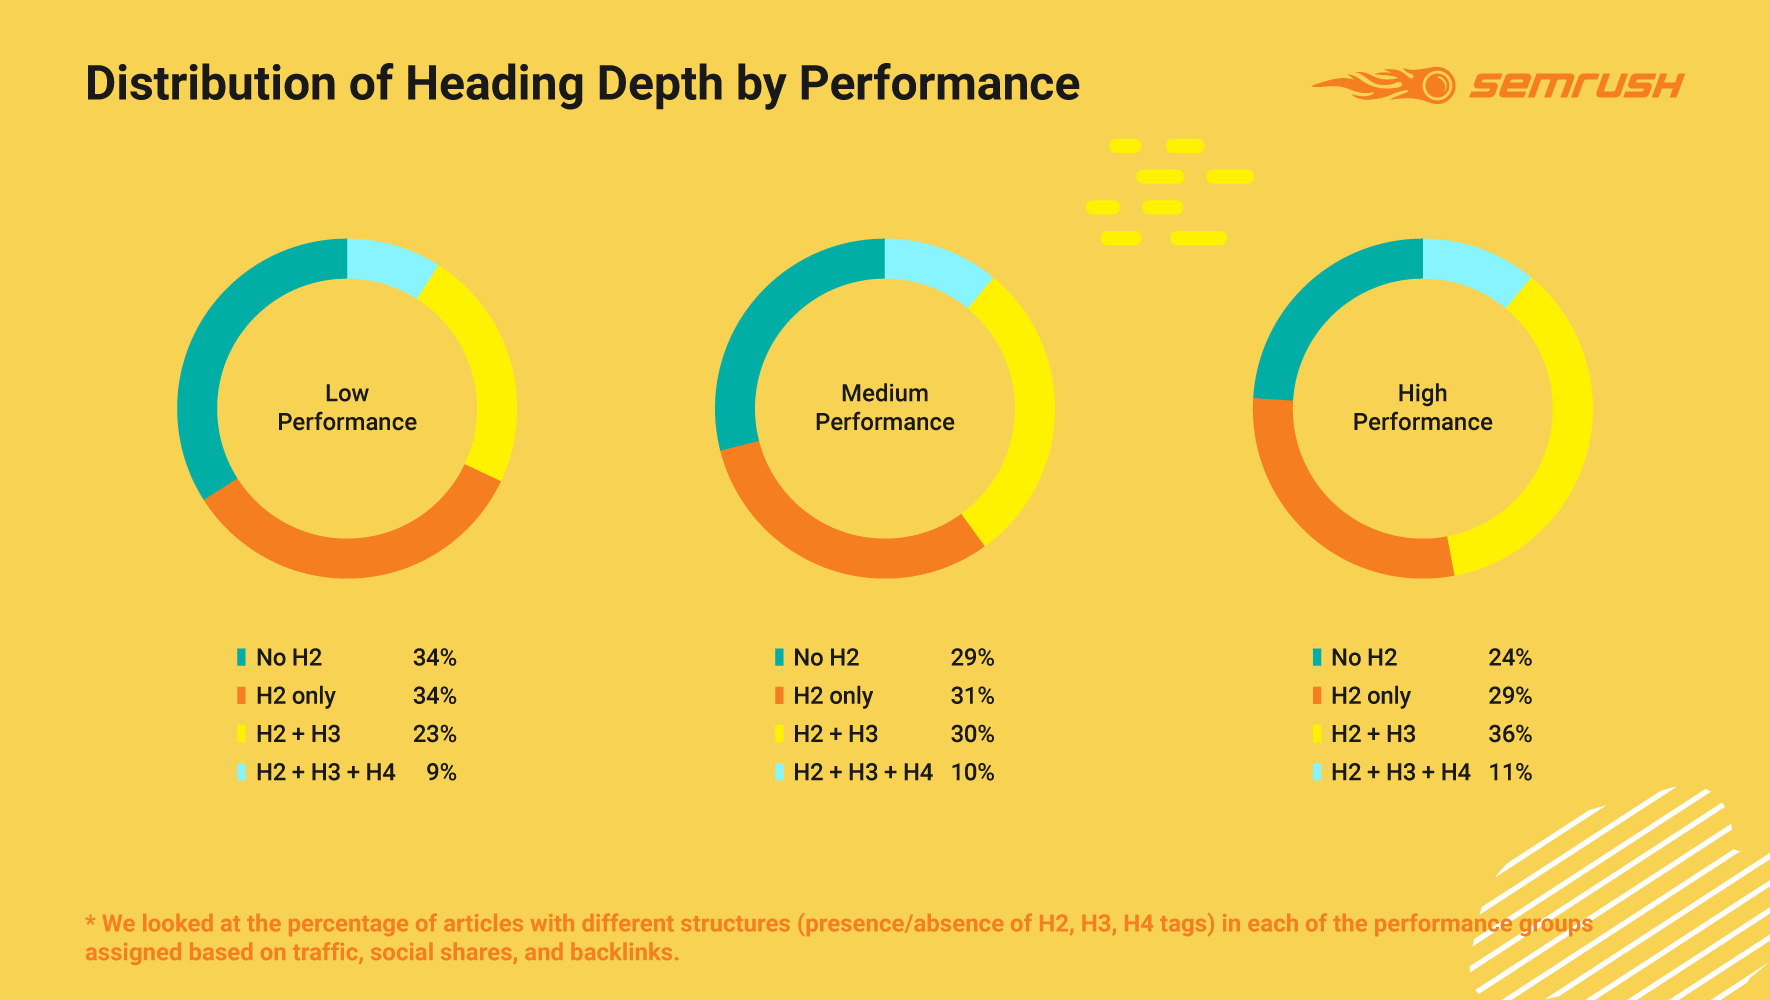 Distribution of Heading Depth by Performance